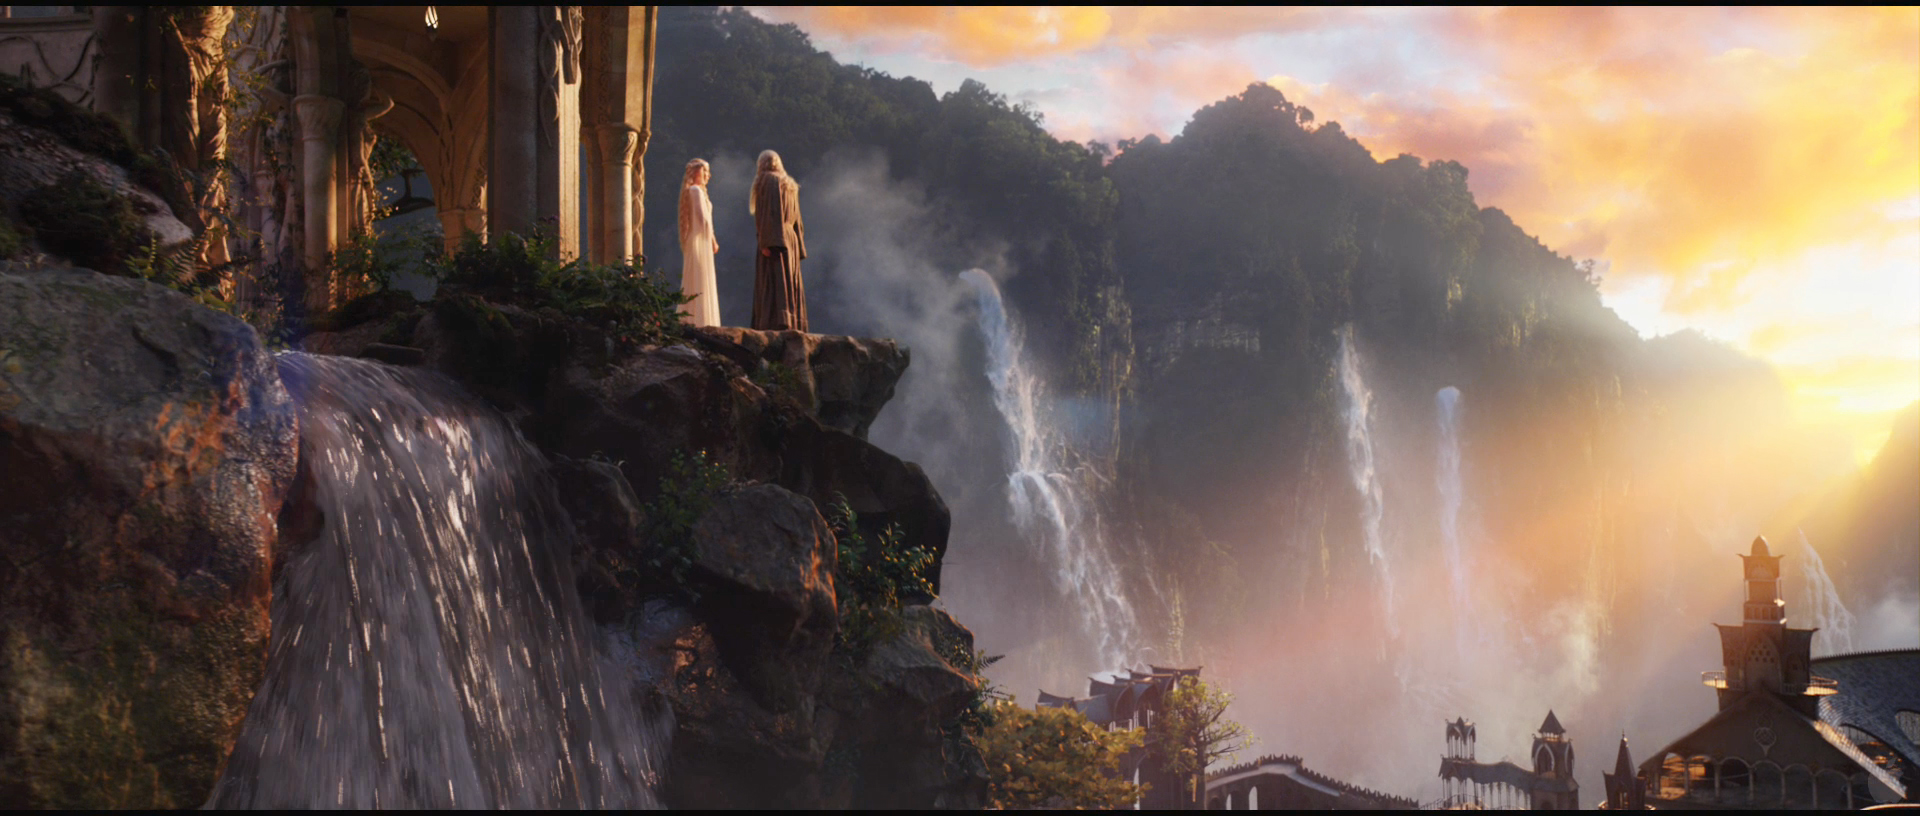 rivendell wallpaper - photo #22